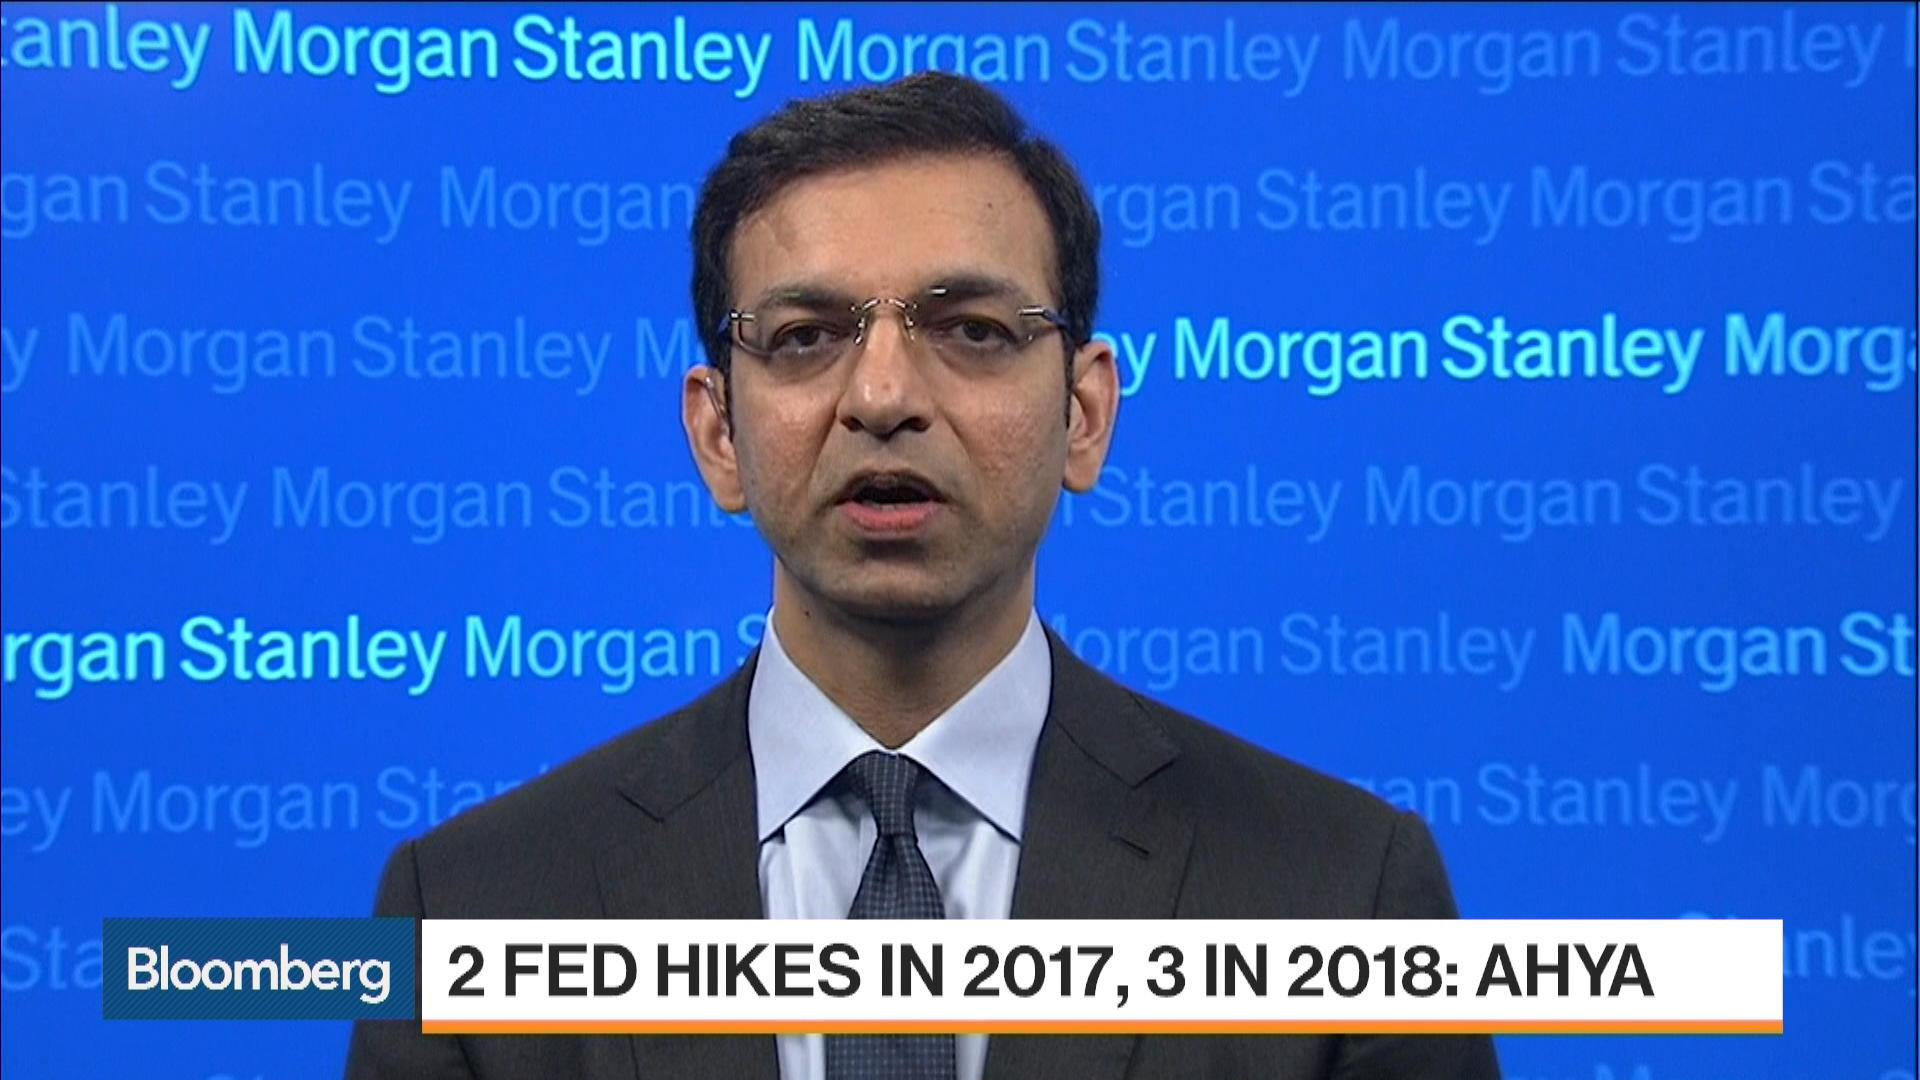 Morgan Stanley's Ahya: Why We See Two Fed Hikes in 2017